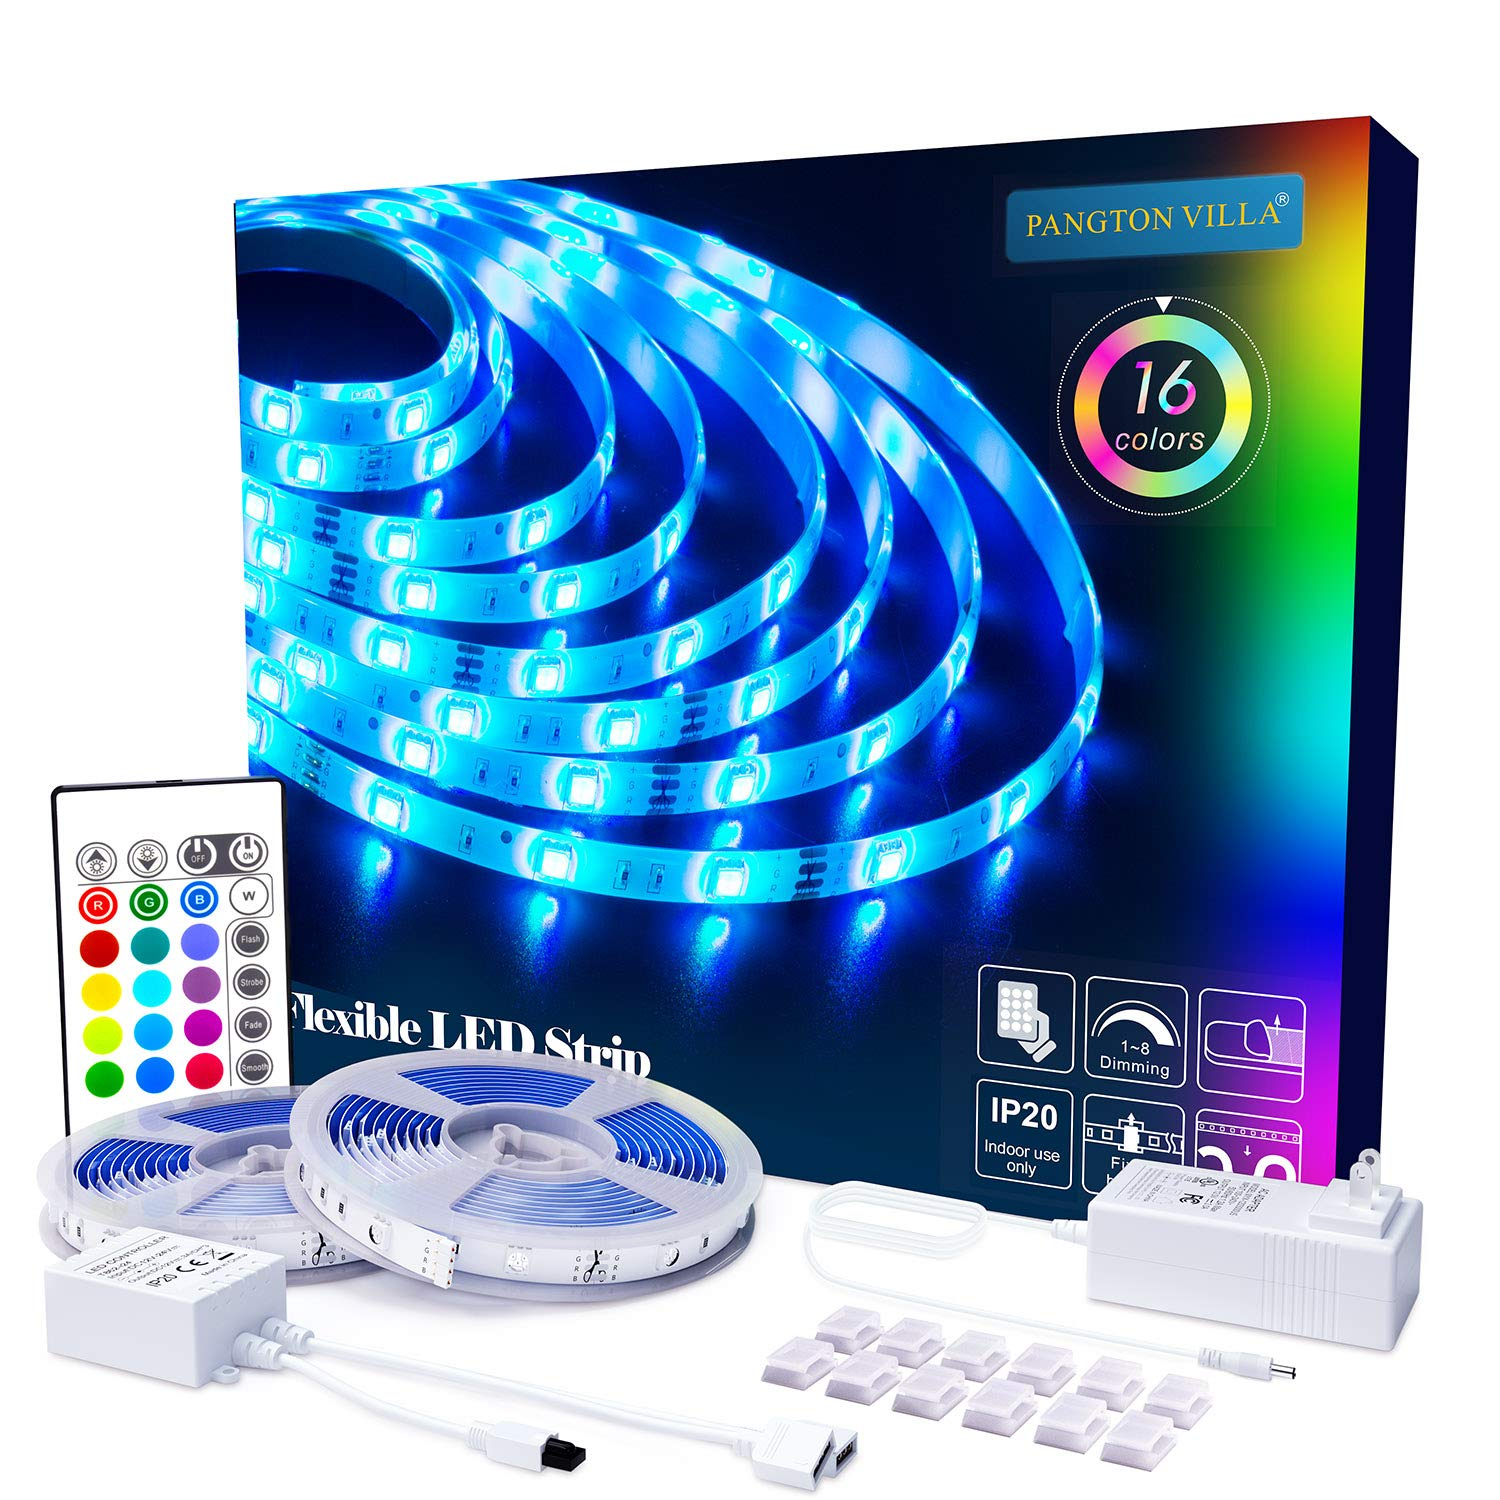 PANGTON VILLA Led Strip Lights 32.8ft with Remote and 3A Power Supply, SMD 5050 Color Changing LED Strip Light Kit for Room, Kitchen, Bedroom, Home Decoration Led Lights by PANGTON VILLA